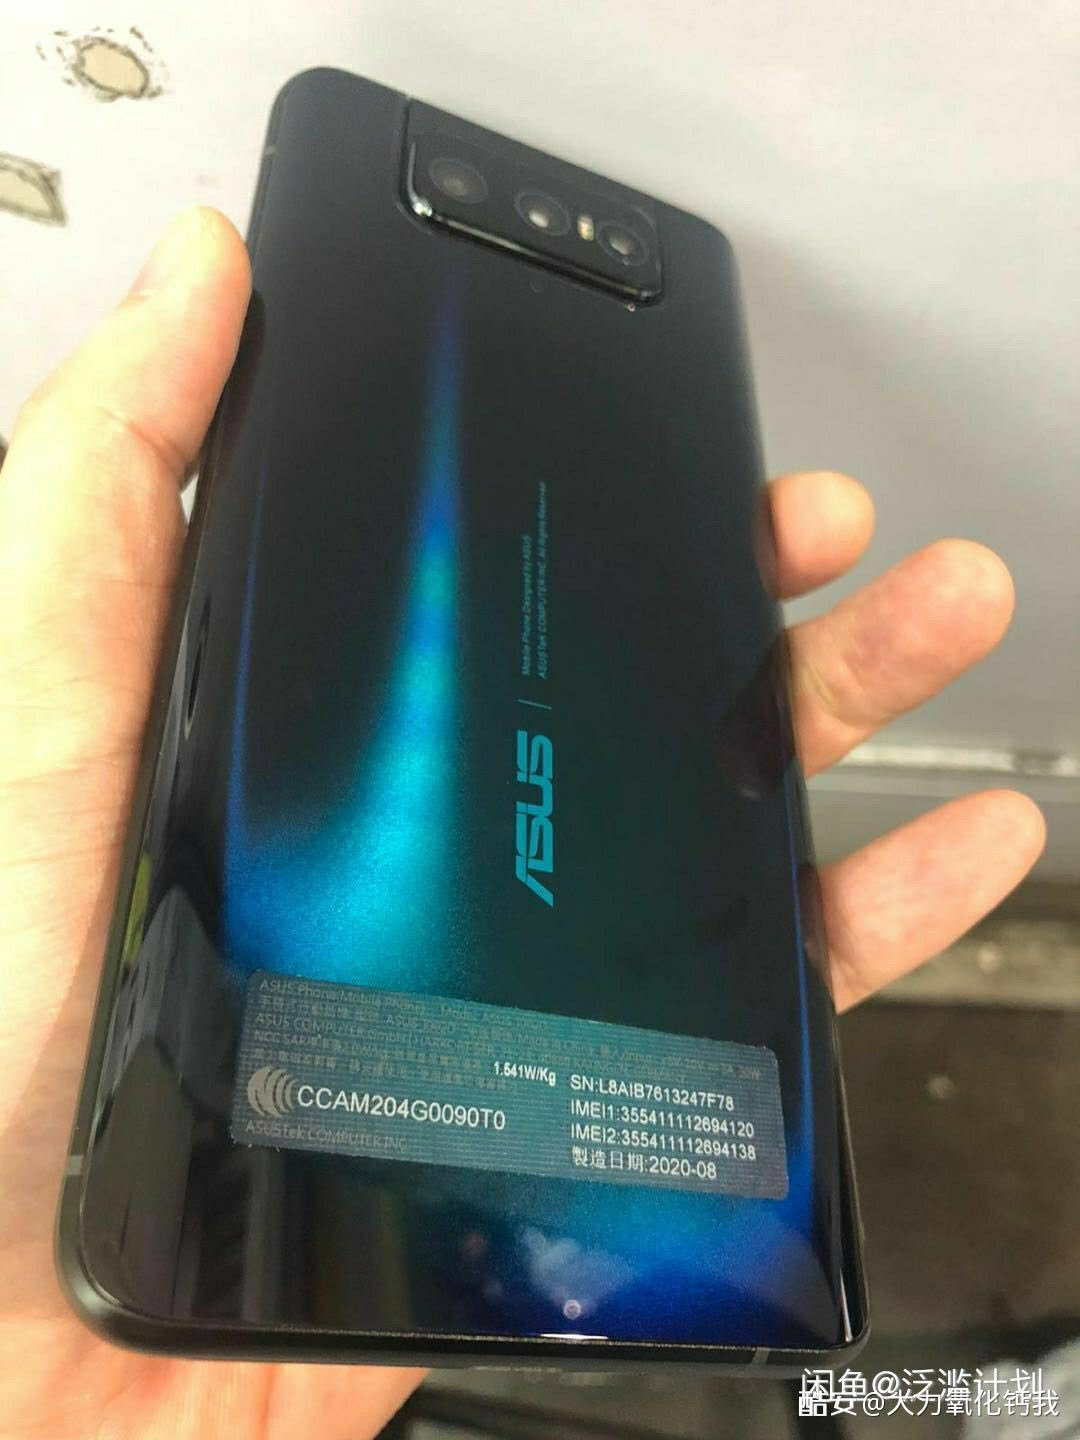 Asus Znfone 7 leaked image